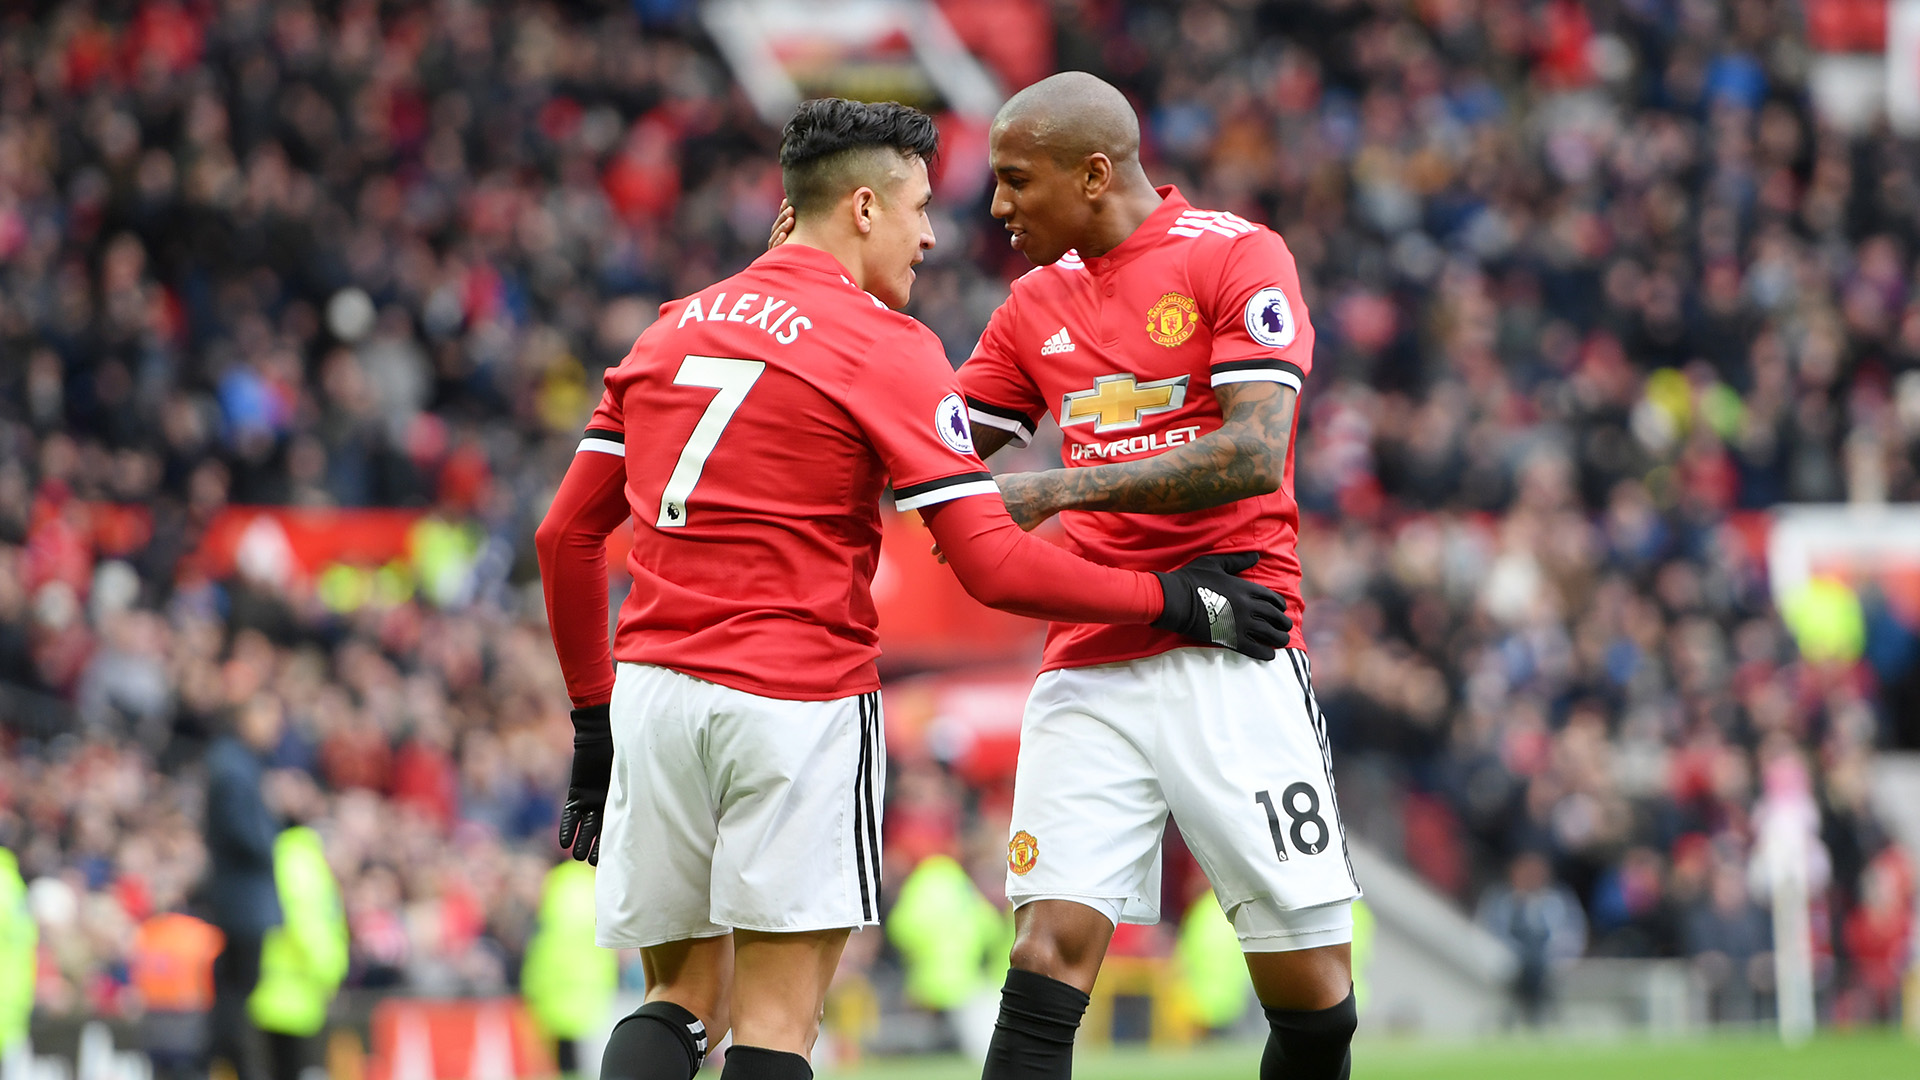 Alexis Sanchez Ashley Young Manchester United Swansea City Premier League